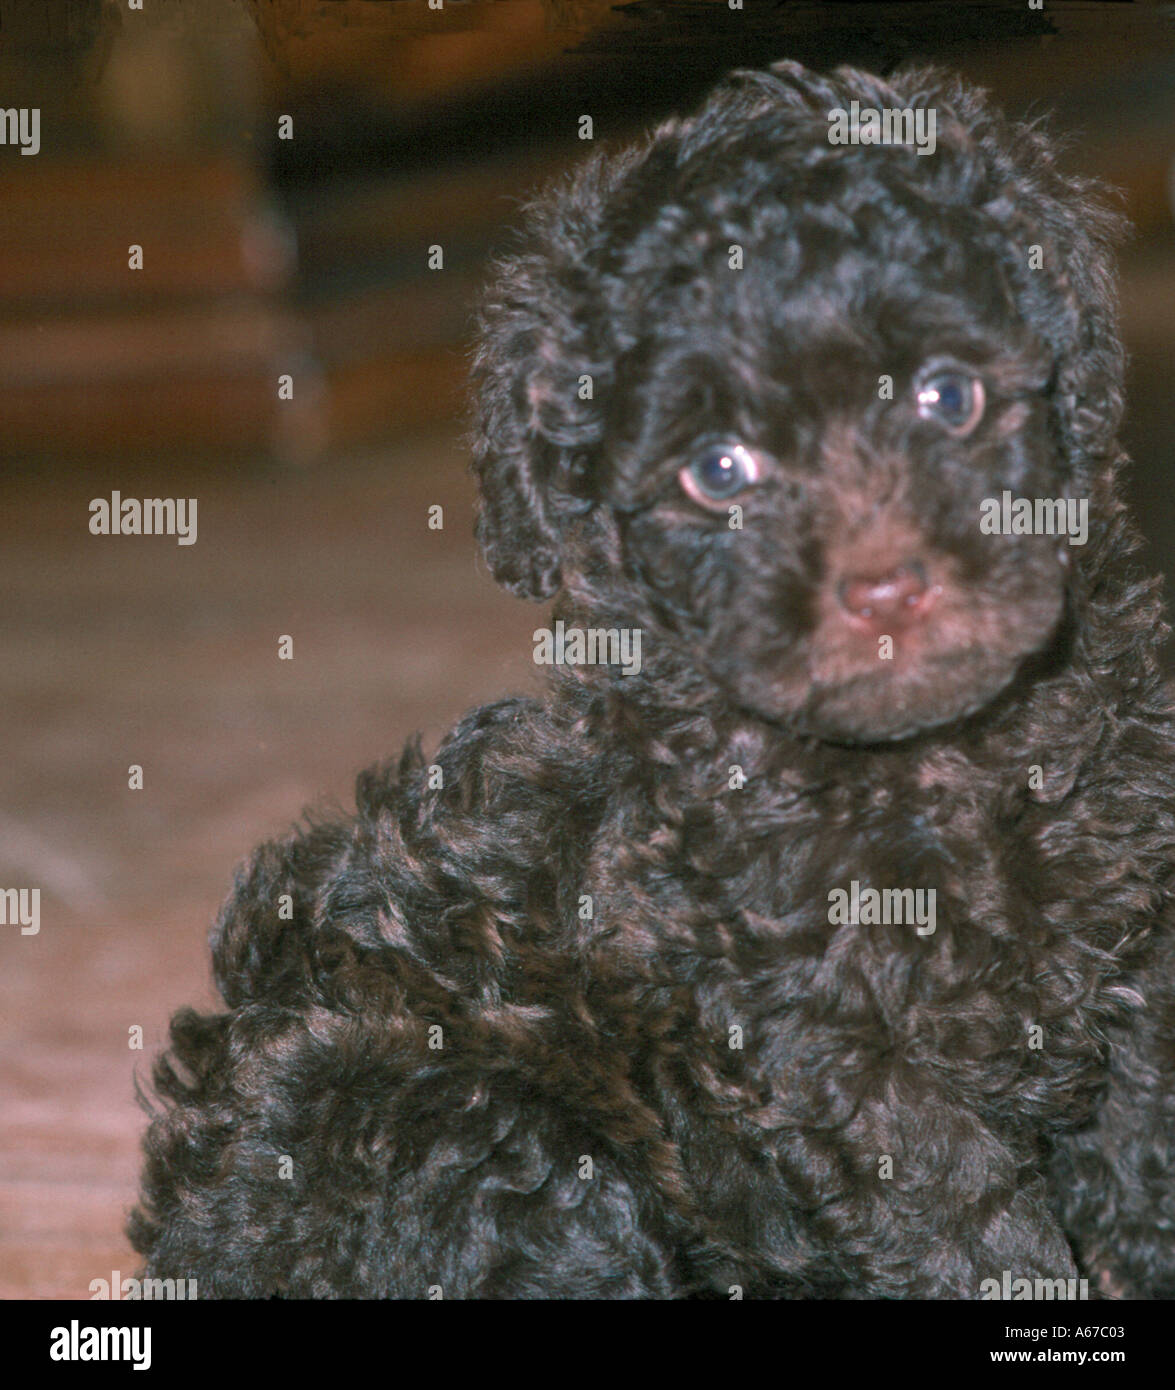 2 Month Old Brown Chocolate Poodle Puppy Stock Photo 424963 Alamy